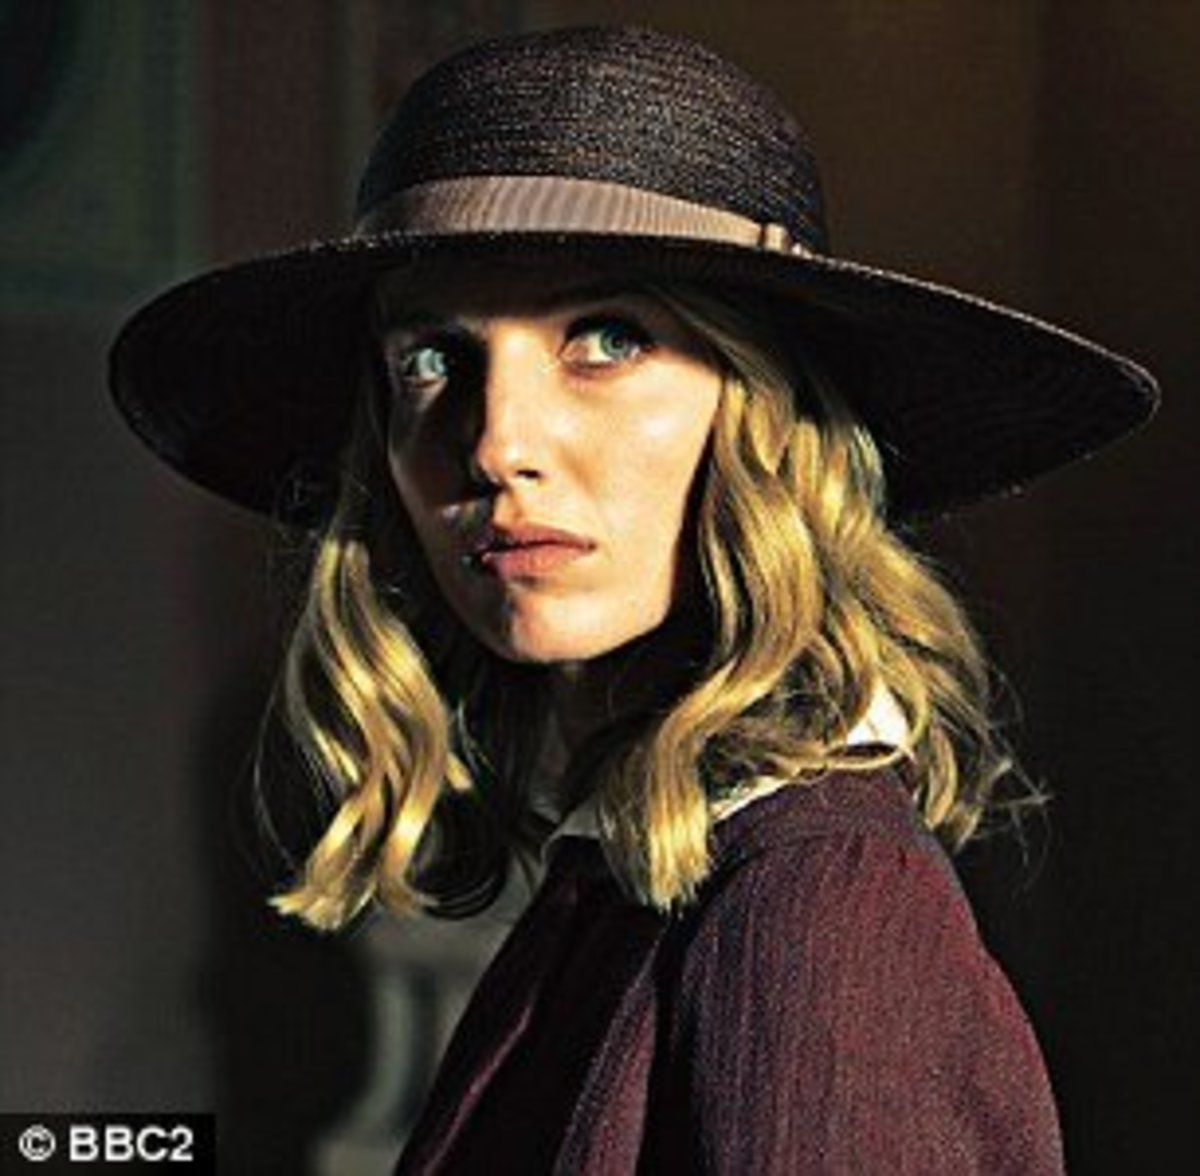 Peaky Blinder's Grace Burgess/Annabelle Wallis Hair Tutorial